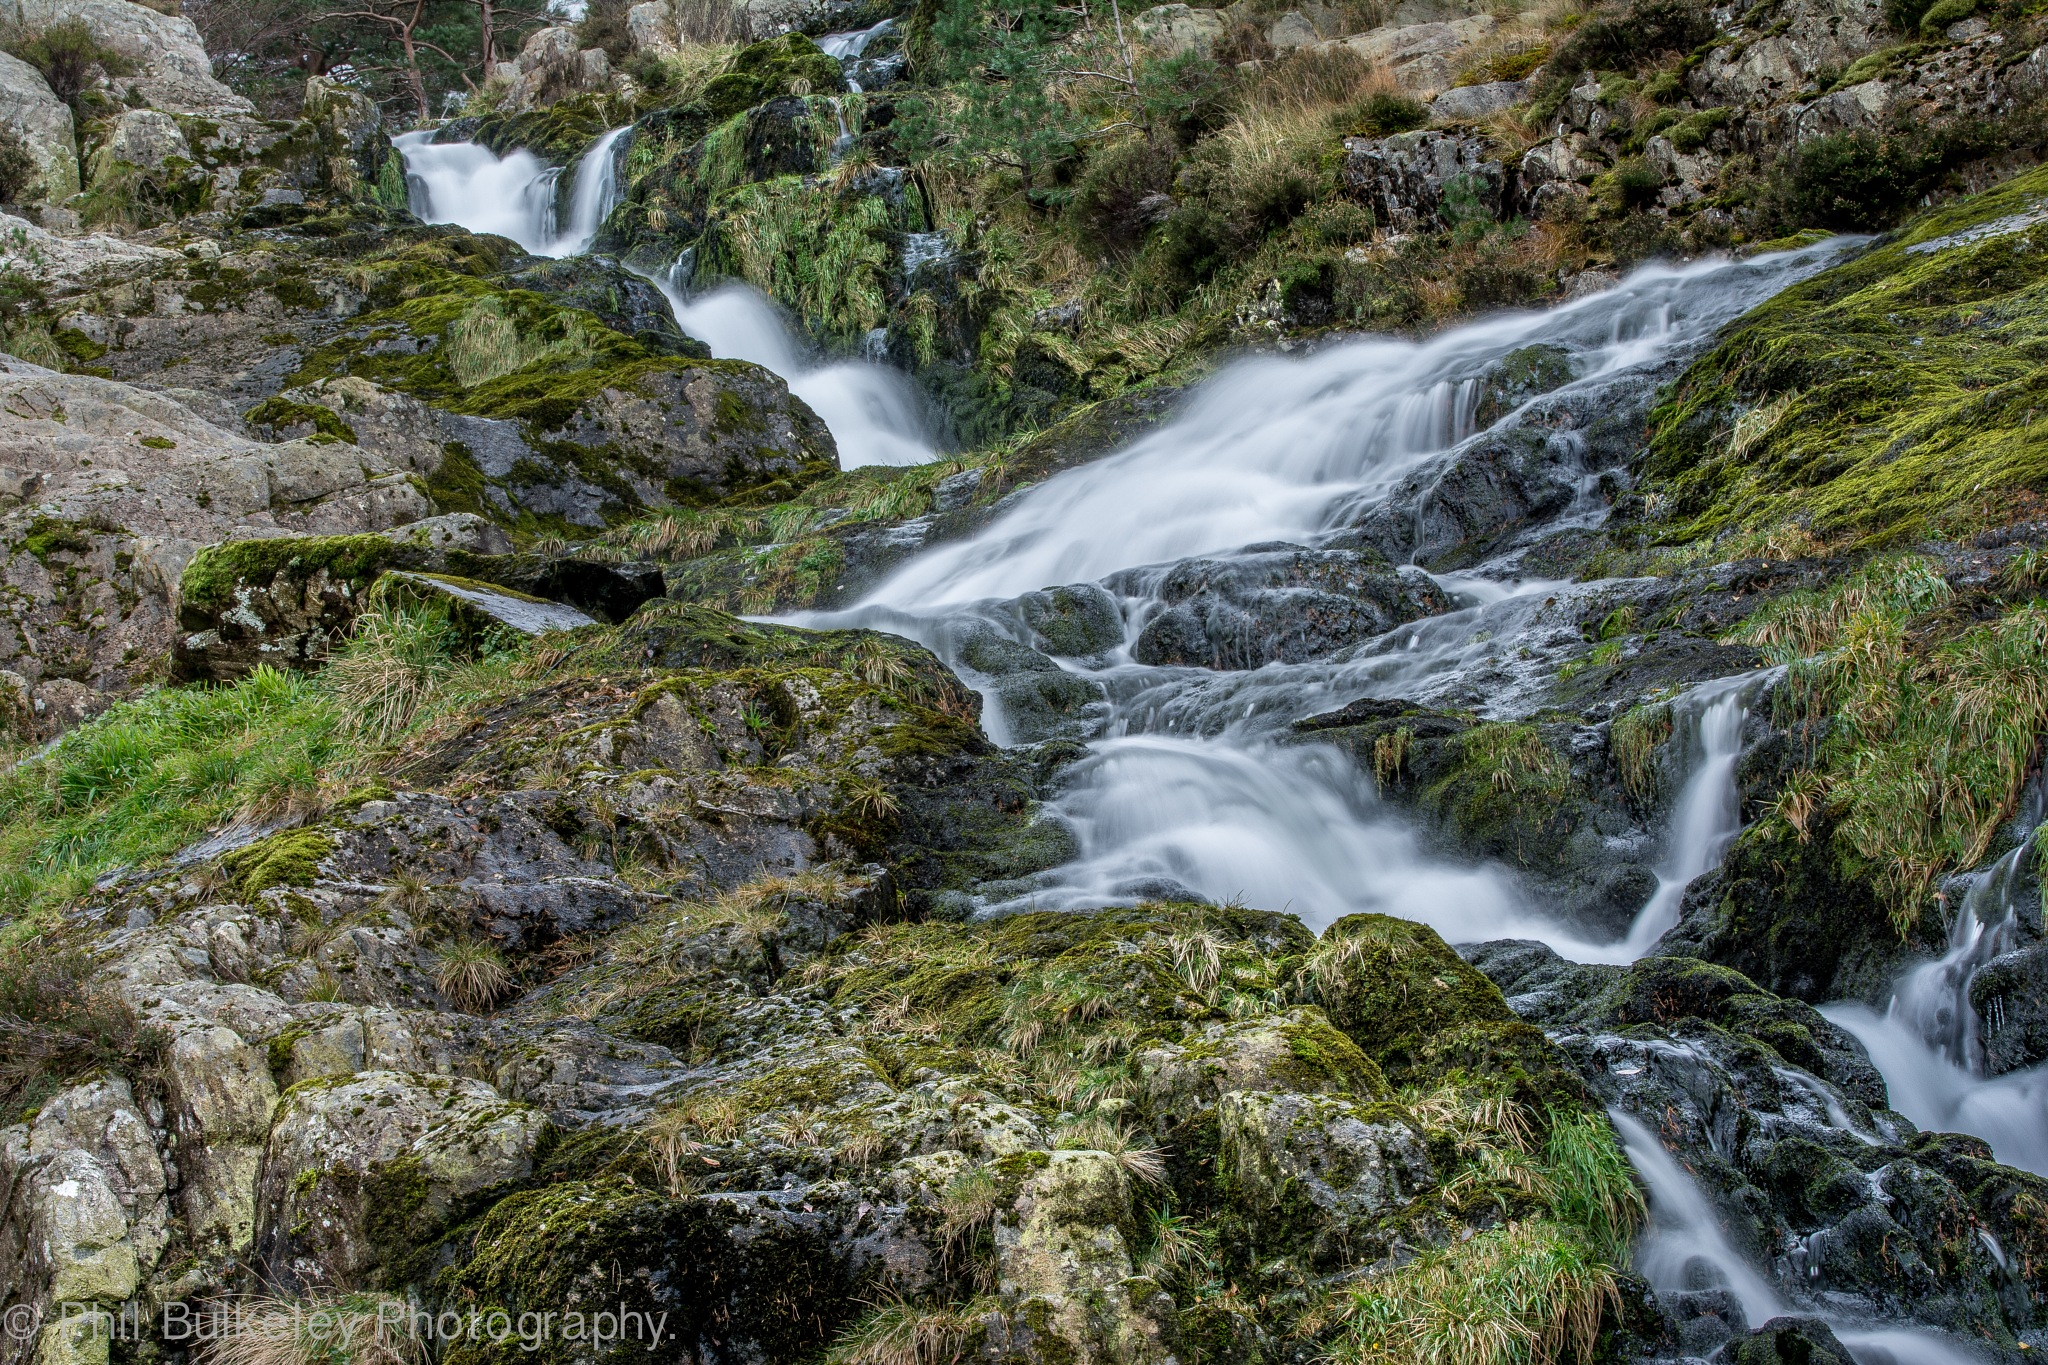 Idwal Weeps by philbulkeley